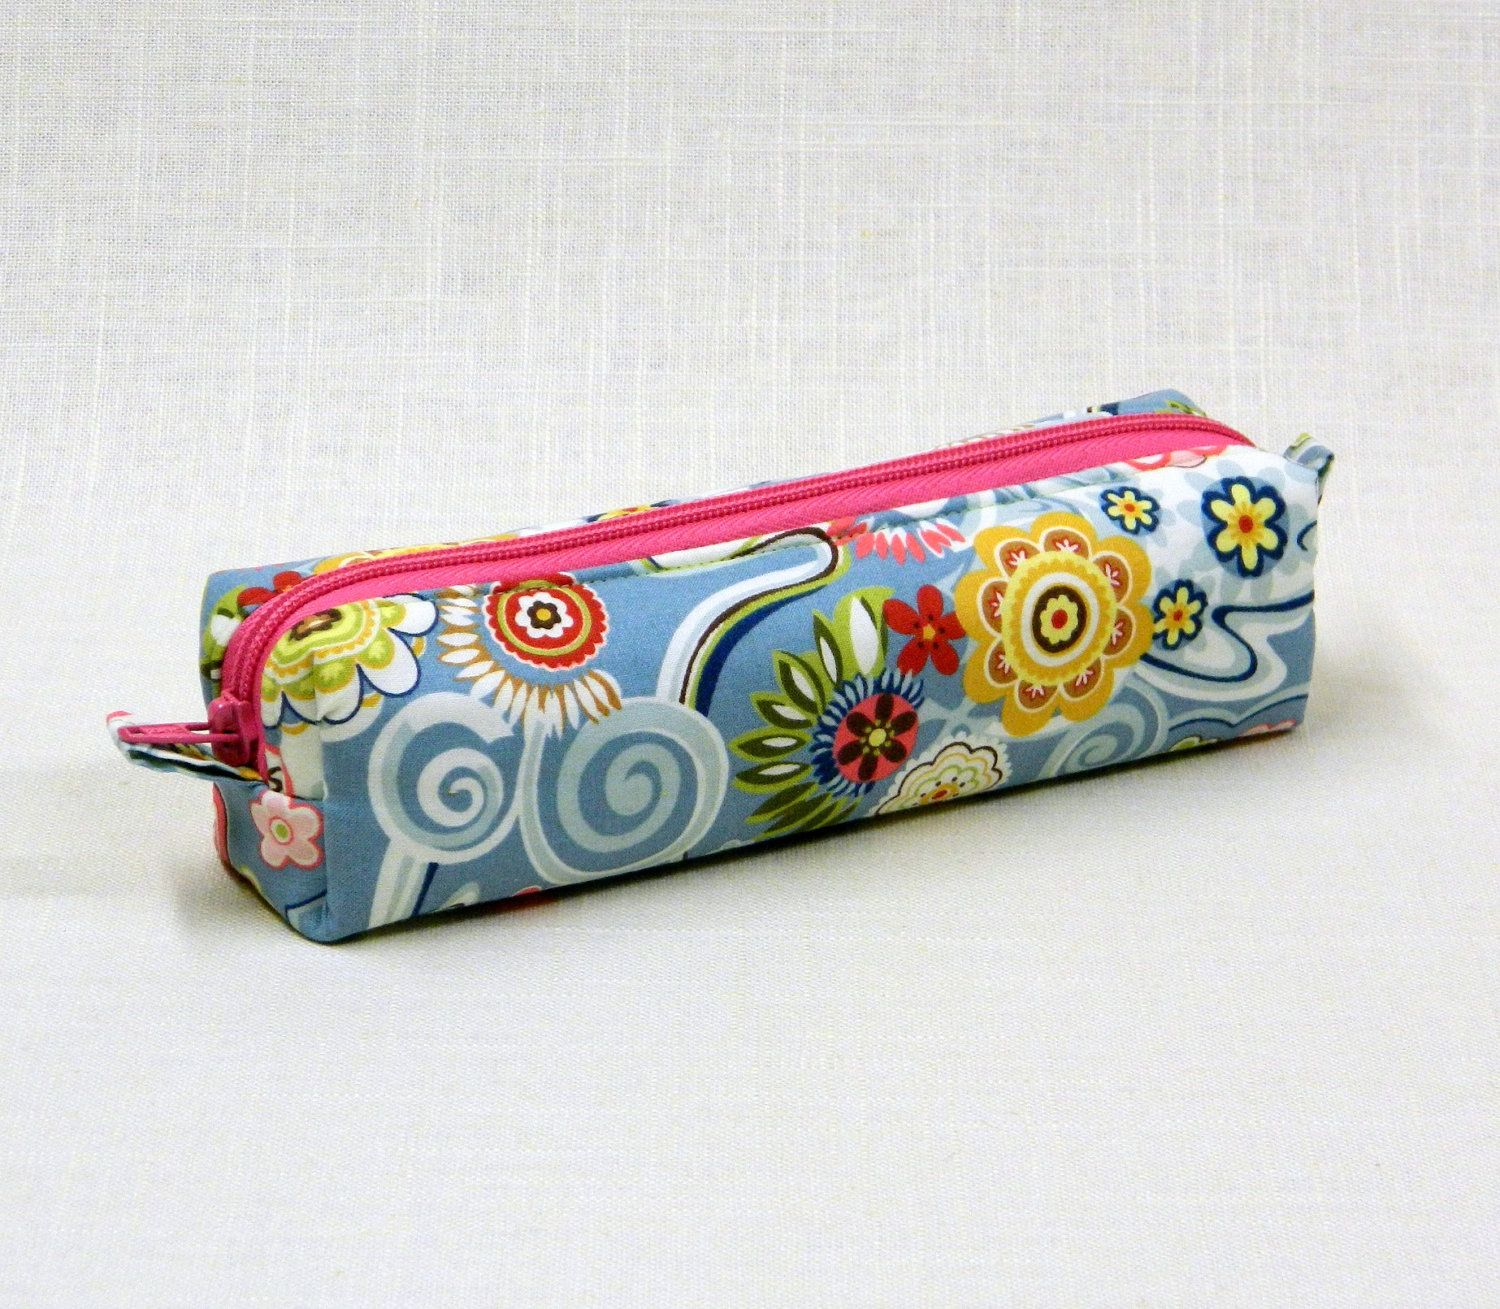 Sewing project - pencil case   Love sew   Pinterest   Costura ...